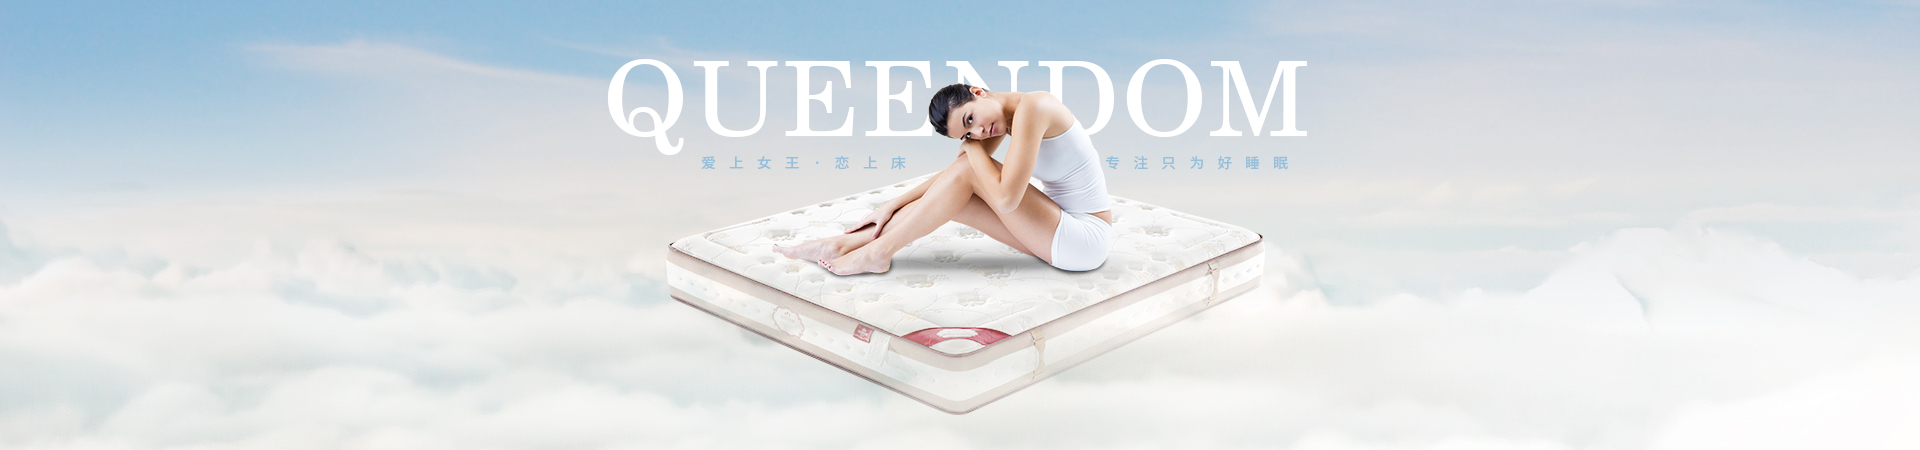 http://www.queendom.com.cn/data/upload/201912/20191213142455_365.jpg